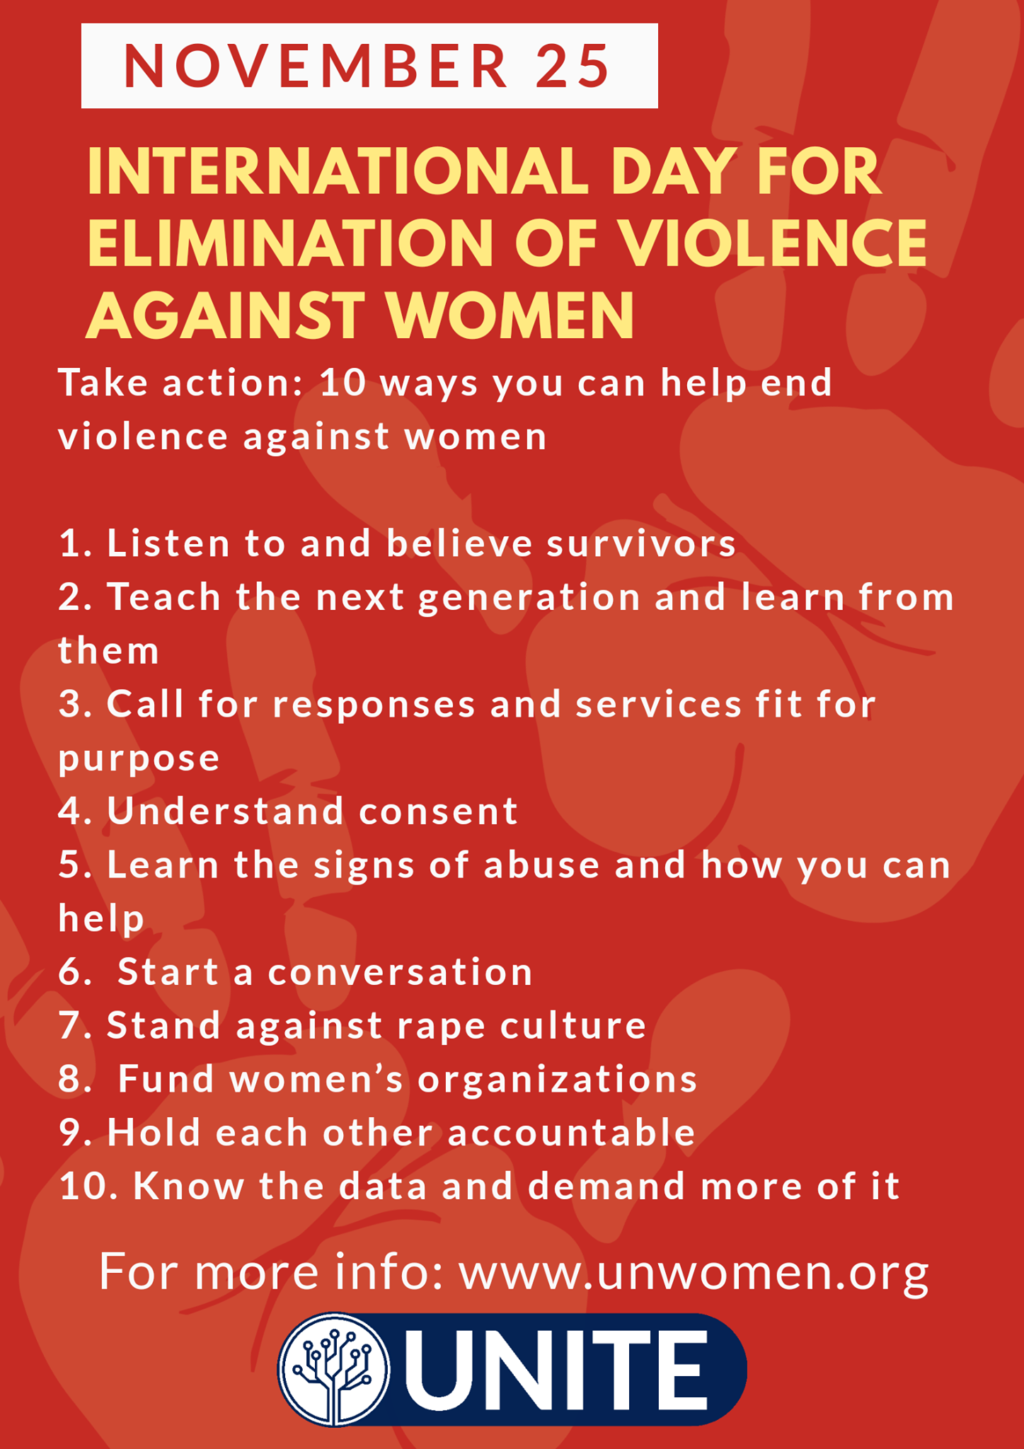 Ending violence against women is everyone's business.